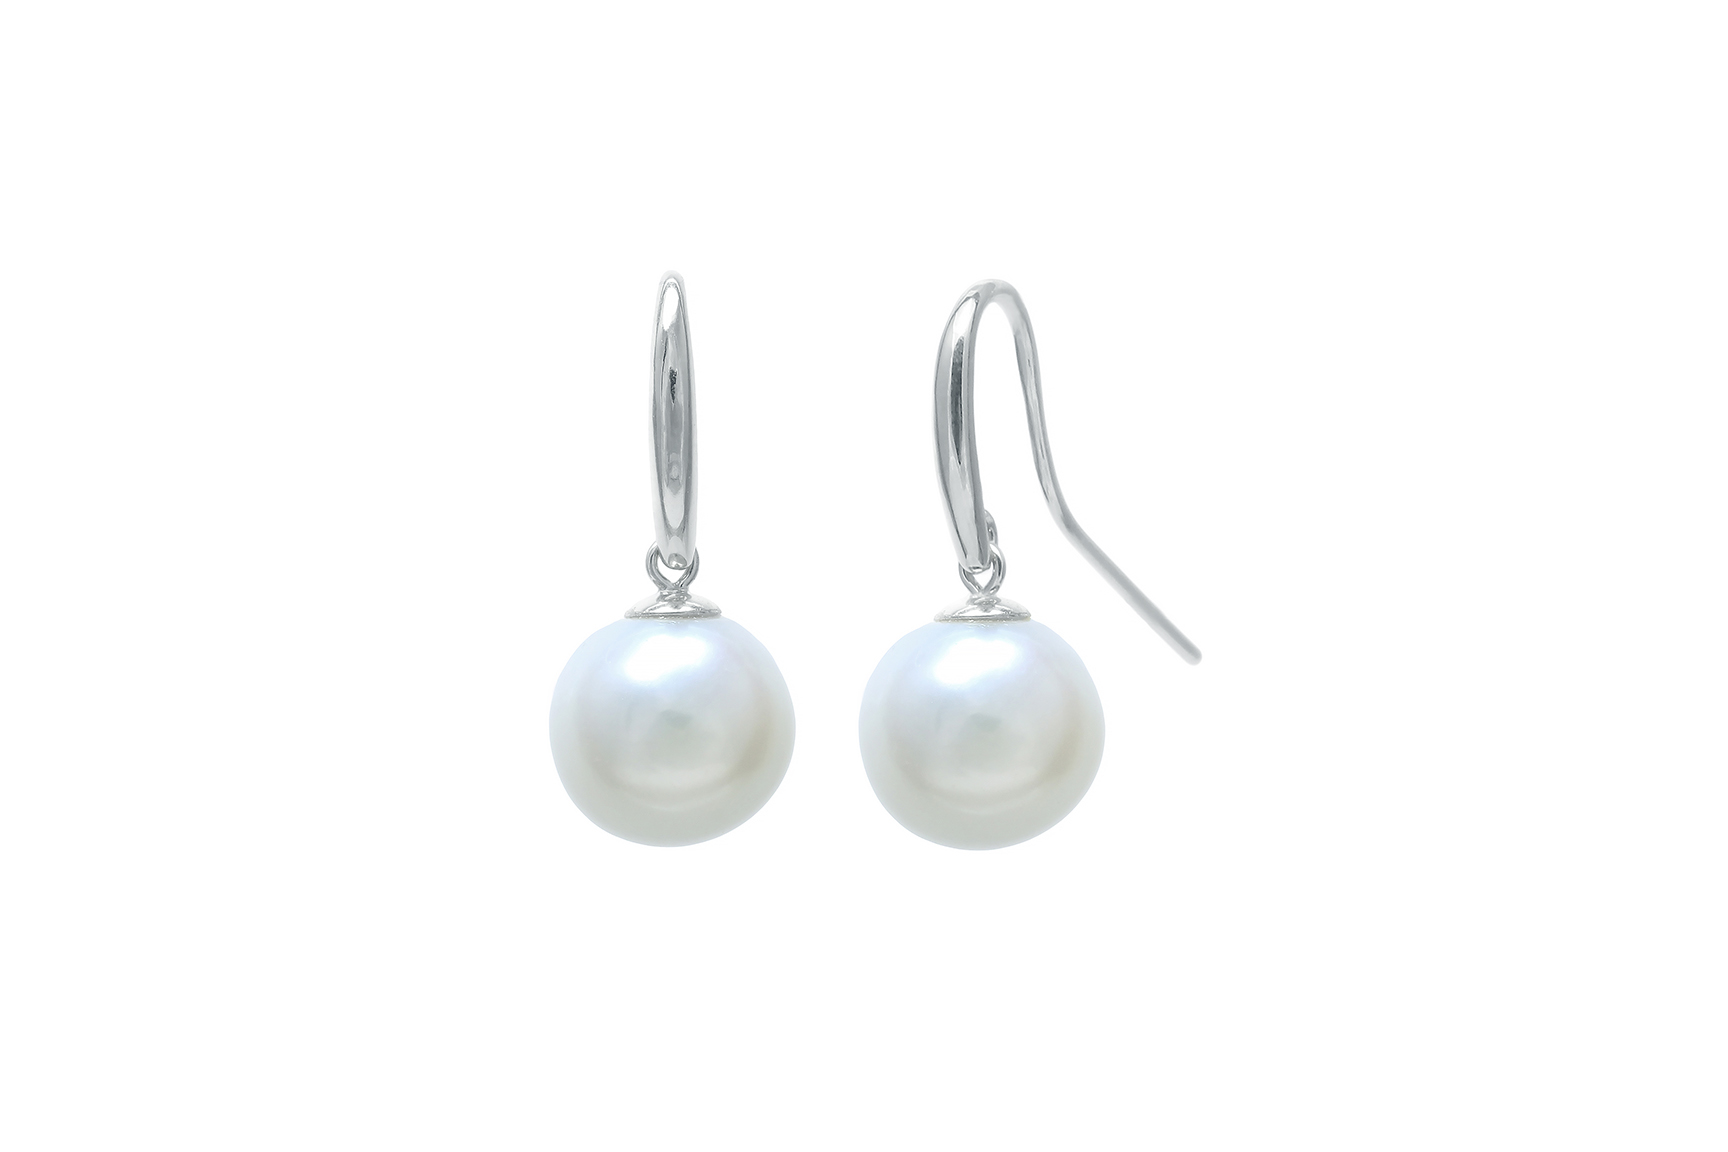 Shepherds crook & cap 10mm nucleated freshwater pearl earring drops on 9ct white gold fittings